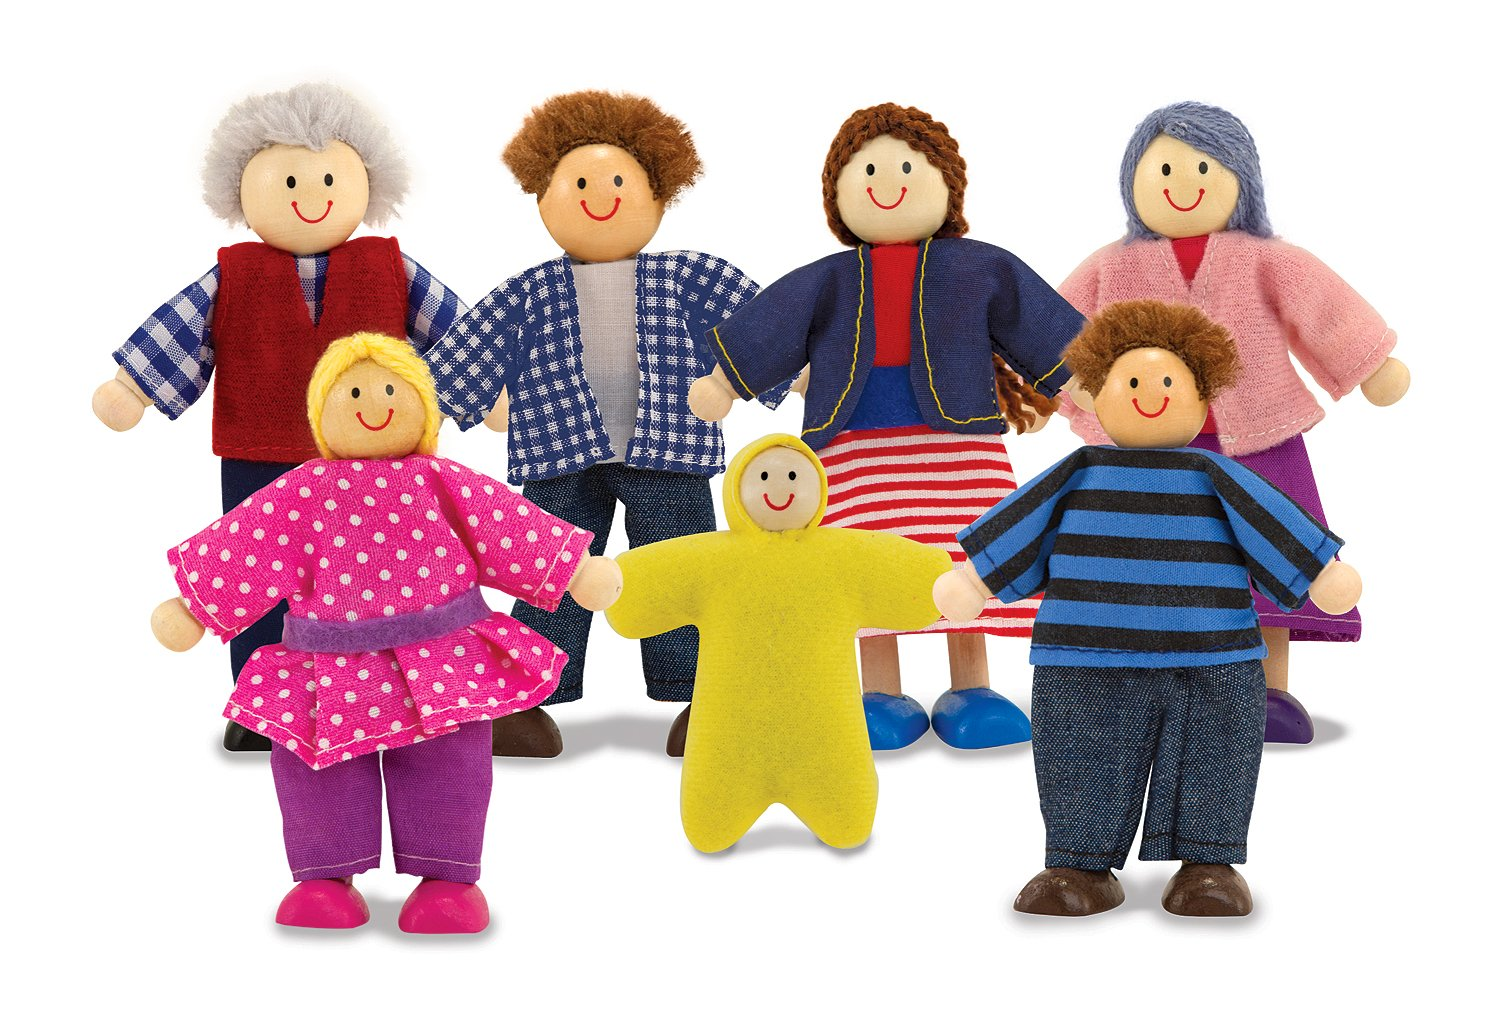 Amazon.com: Melissa & Doug 7-Piece Poseable Wooden Doll Family for ...